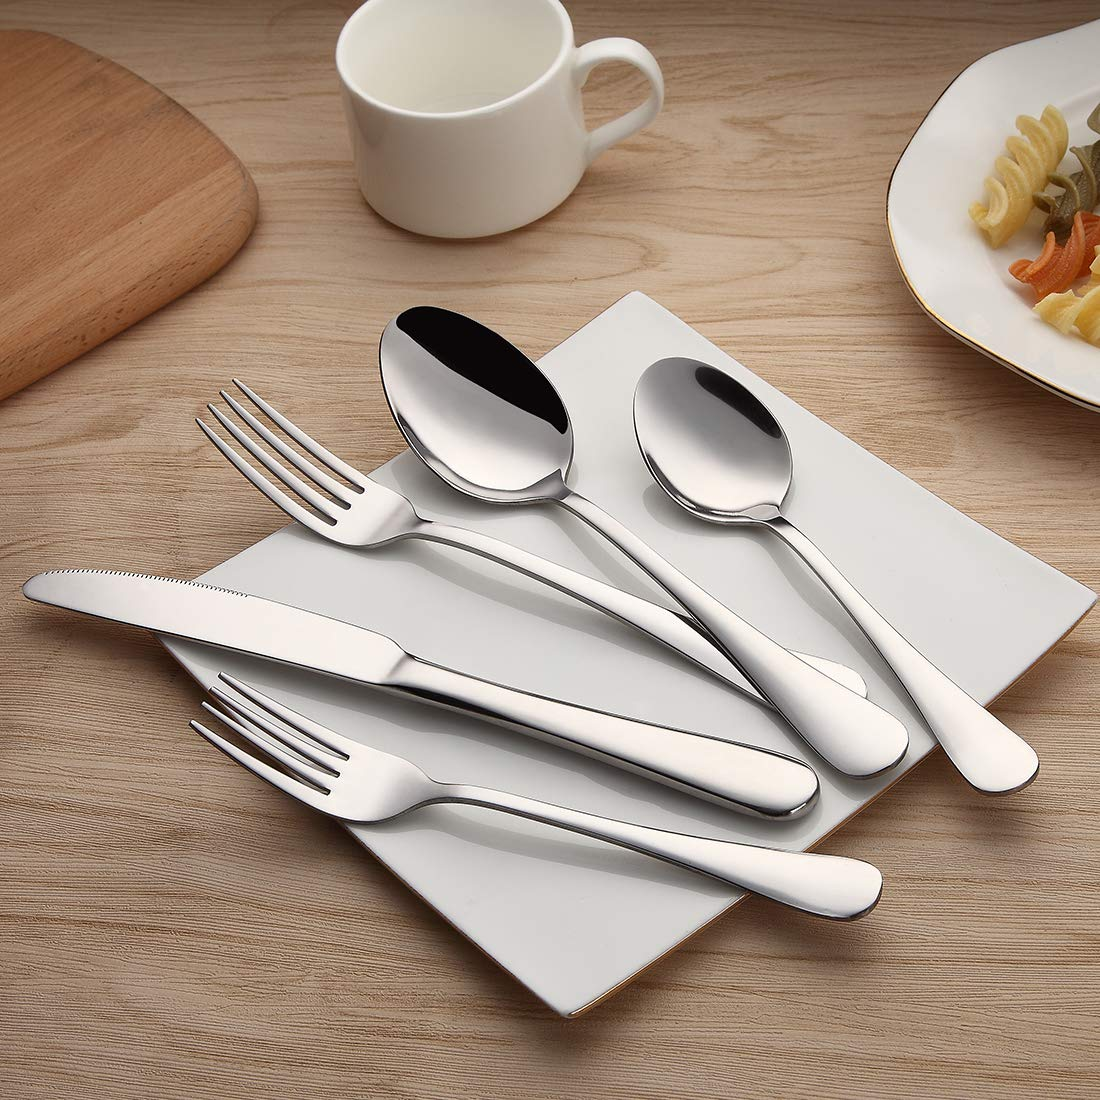 Devico 20-Piece Flatware Set, Stainless Steel Utensil Silverware Metal Cutlery Sets with Forks Spoons Knives, Reusable, Dishwasher Safe, Service for 4